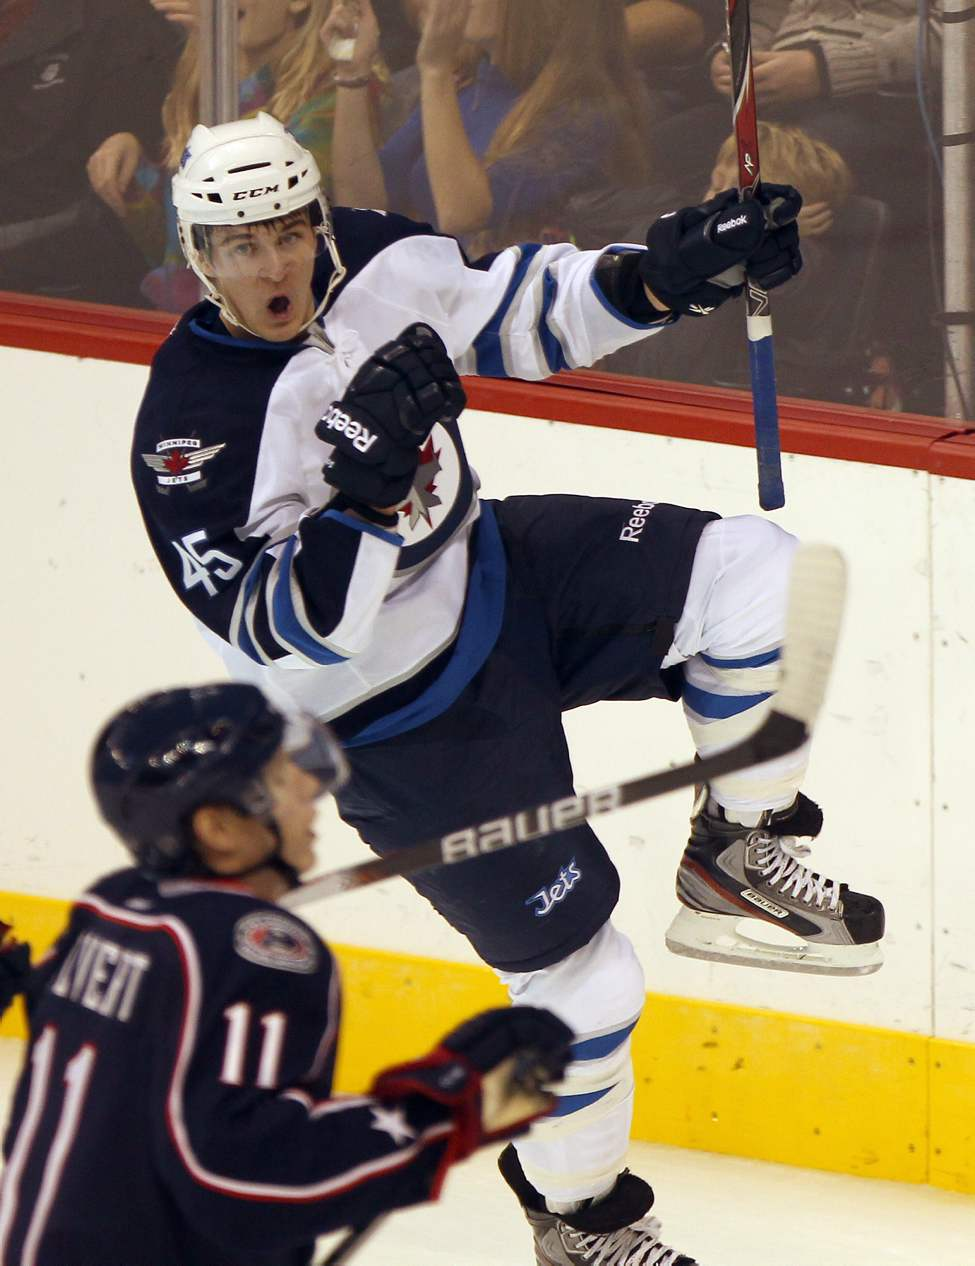 Winnipeg Jets Mark Scheifele celebrates his first period goal against the Columbus Blue Jackets during NHL preseason action Tuesday night in Winnipeg.  (JOE BRYKSA / WINNIPEG FREE PRESS)